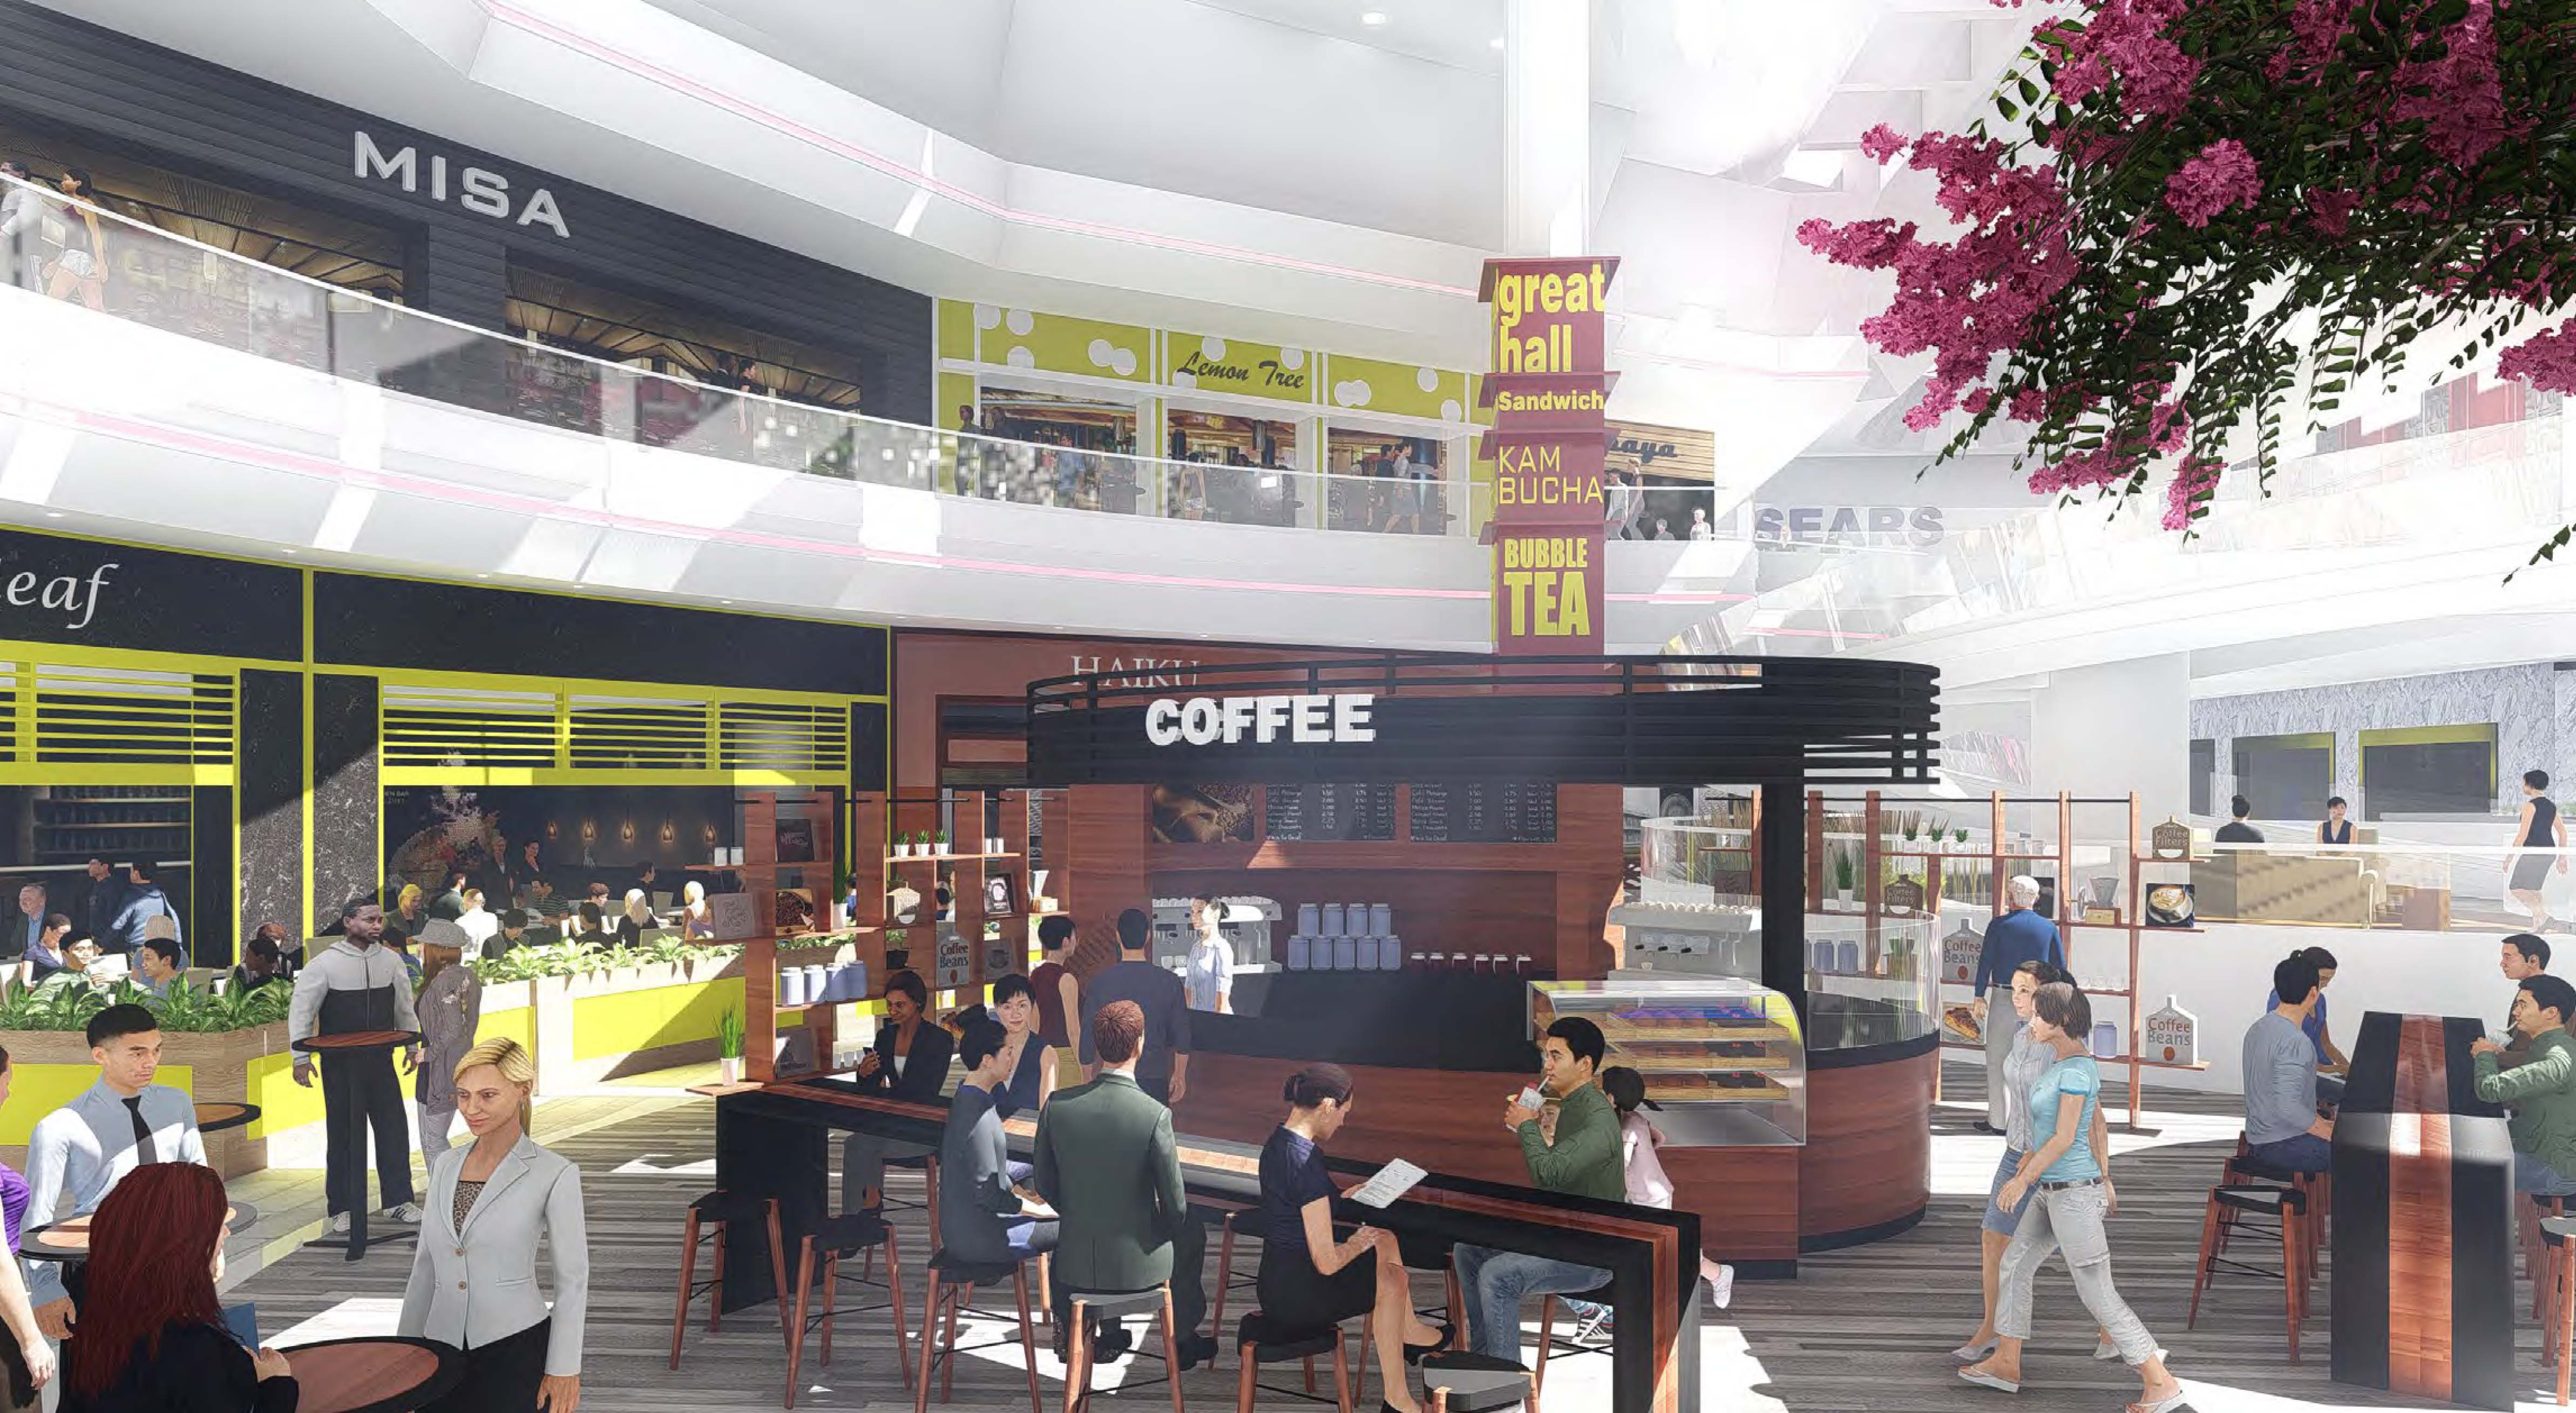 Hilltop Coffee House & Family Center Americas, The Shops at Hilltop unveil renderings of potential future ...